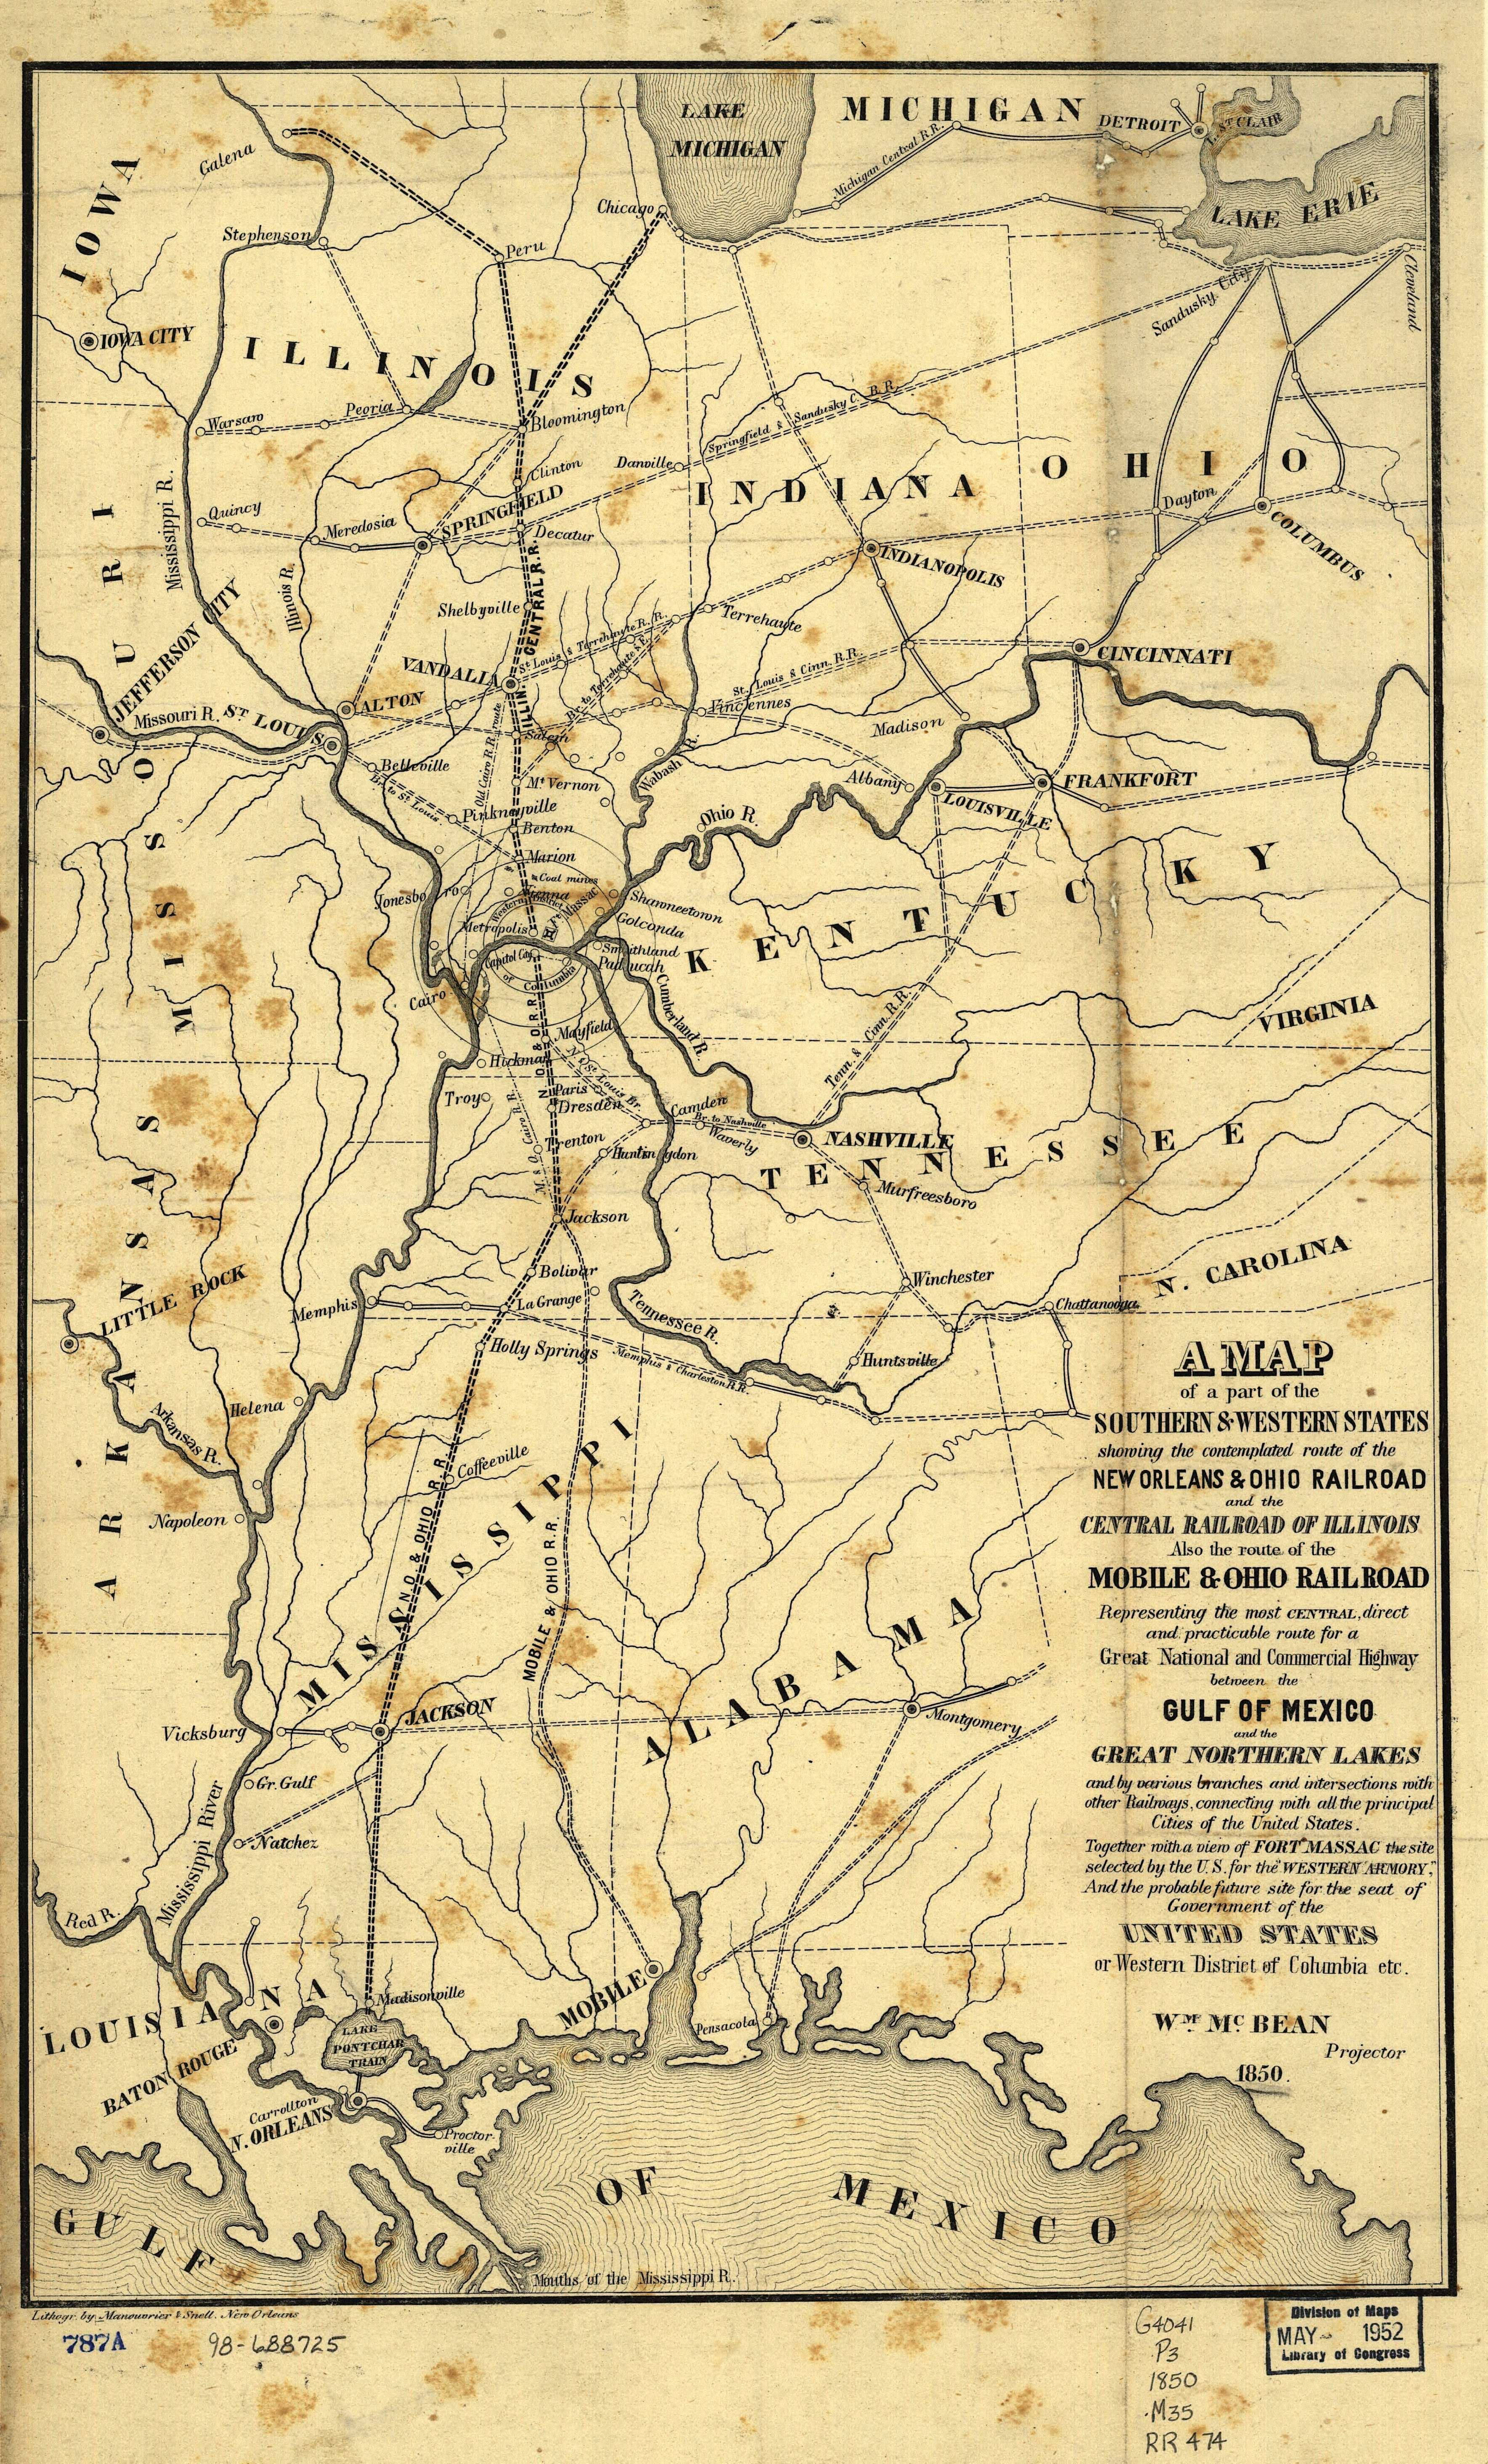 Illinois Central Railroad Map  Train Travel In The S - Us railroad map 1860